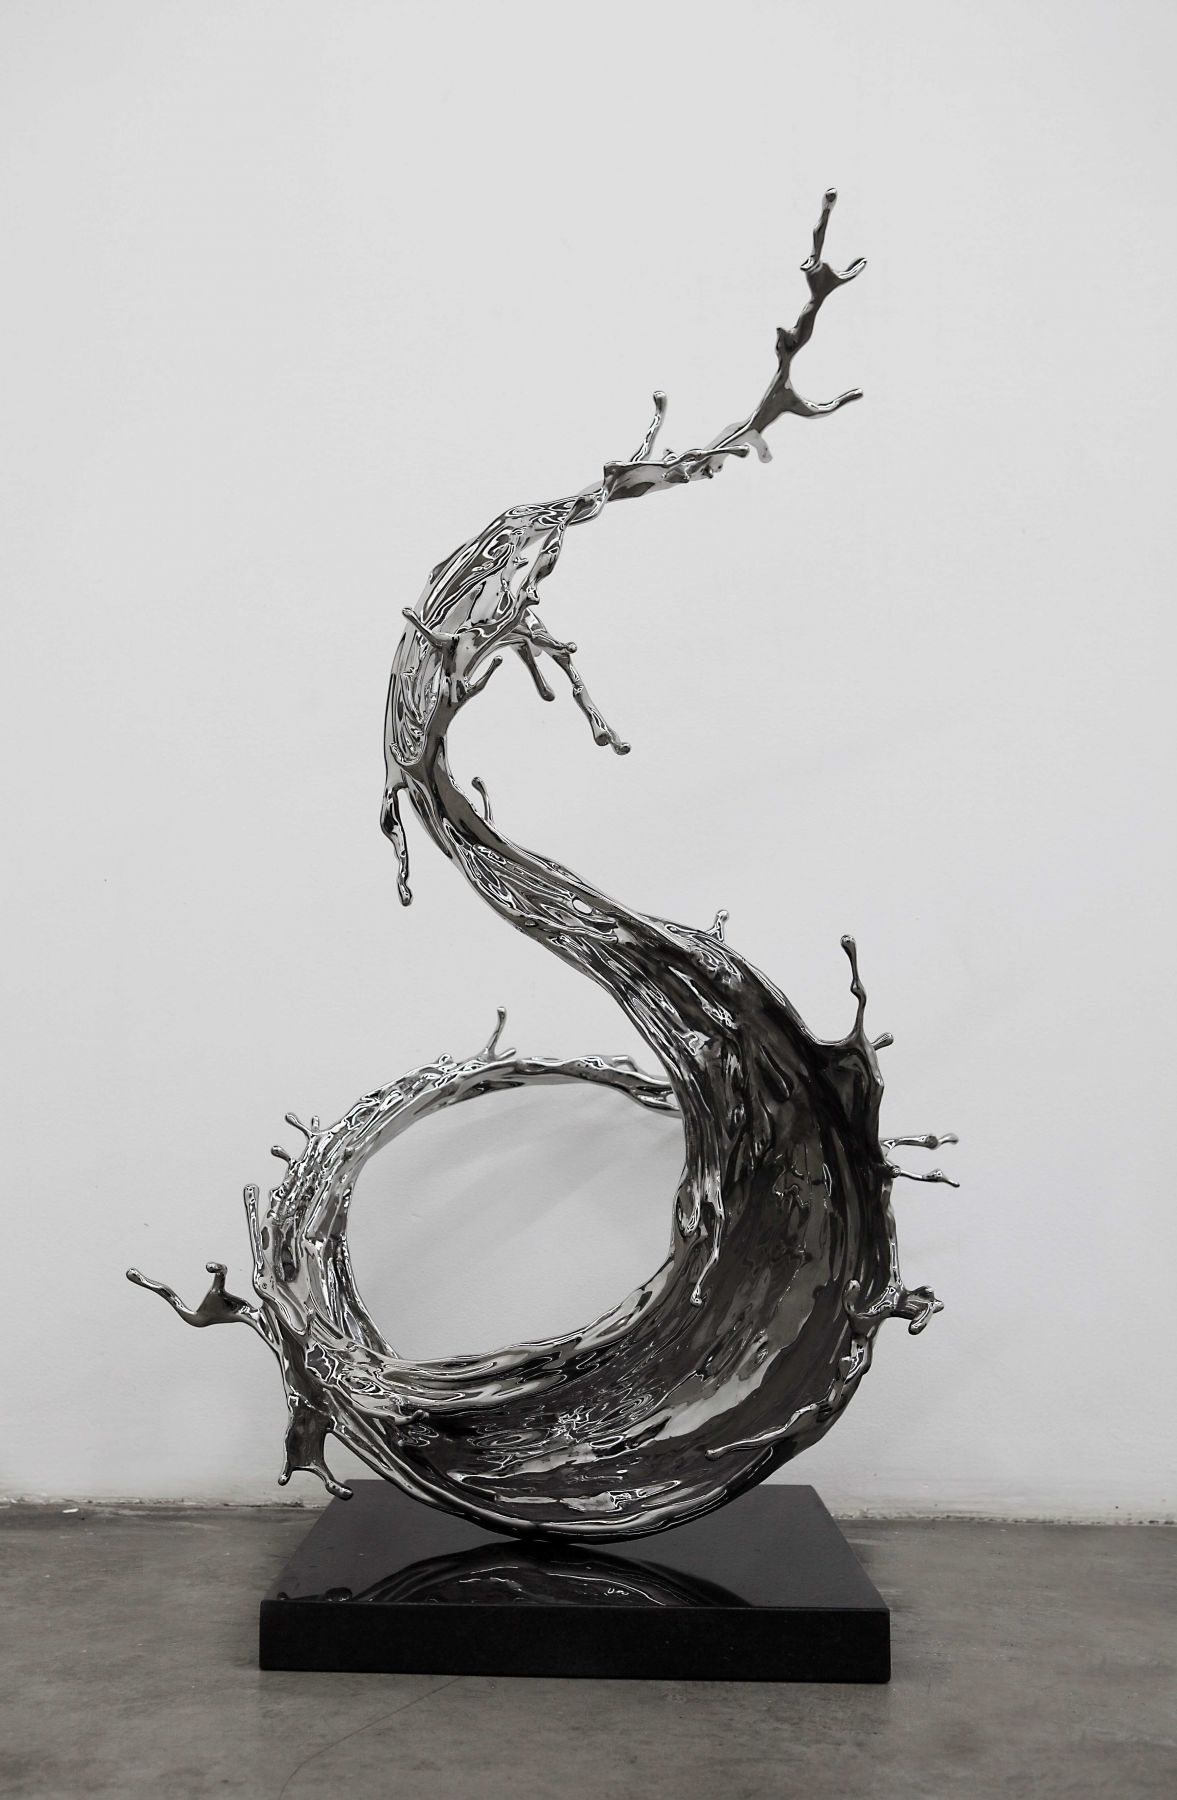 Yan Fei, 2019, stainless steel ,29.92 x 25.59 x 43.31 inches/76 x 65 x 110 cm